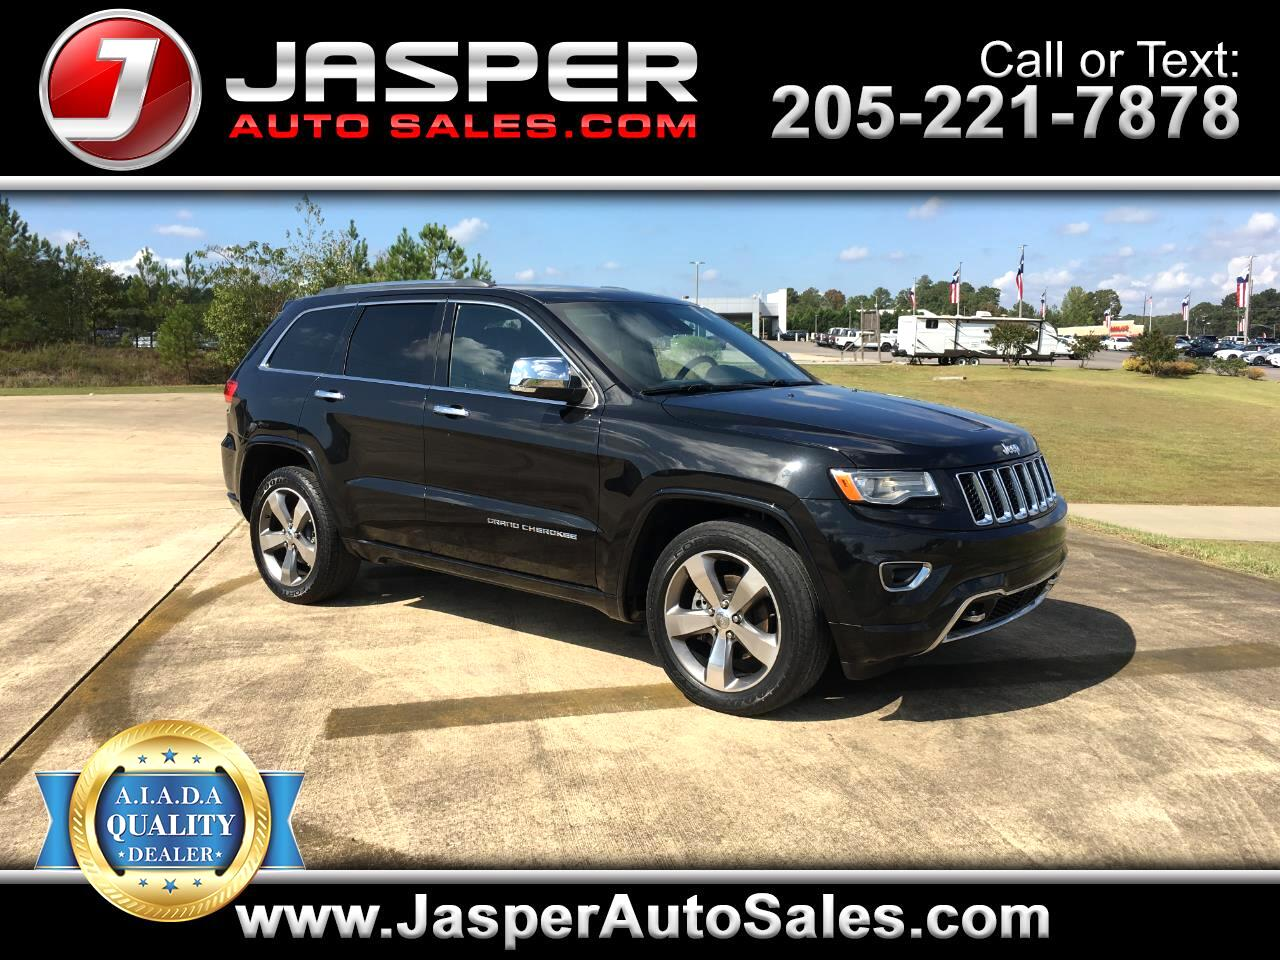 2015 Jeep Grand Cherokee RWD 4dr Overland